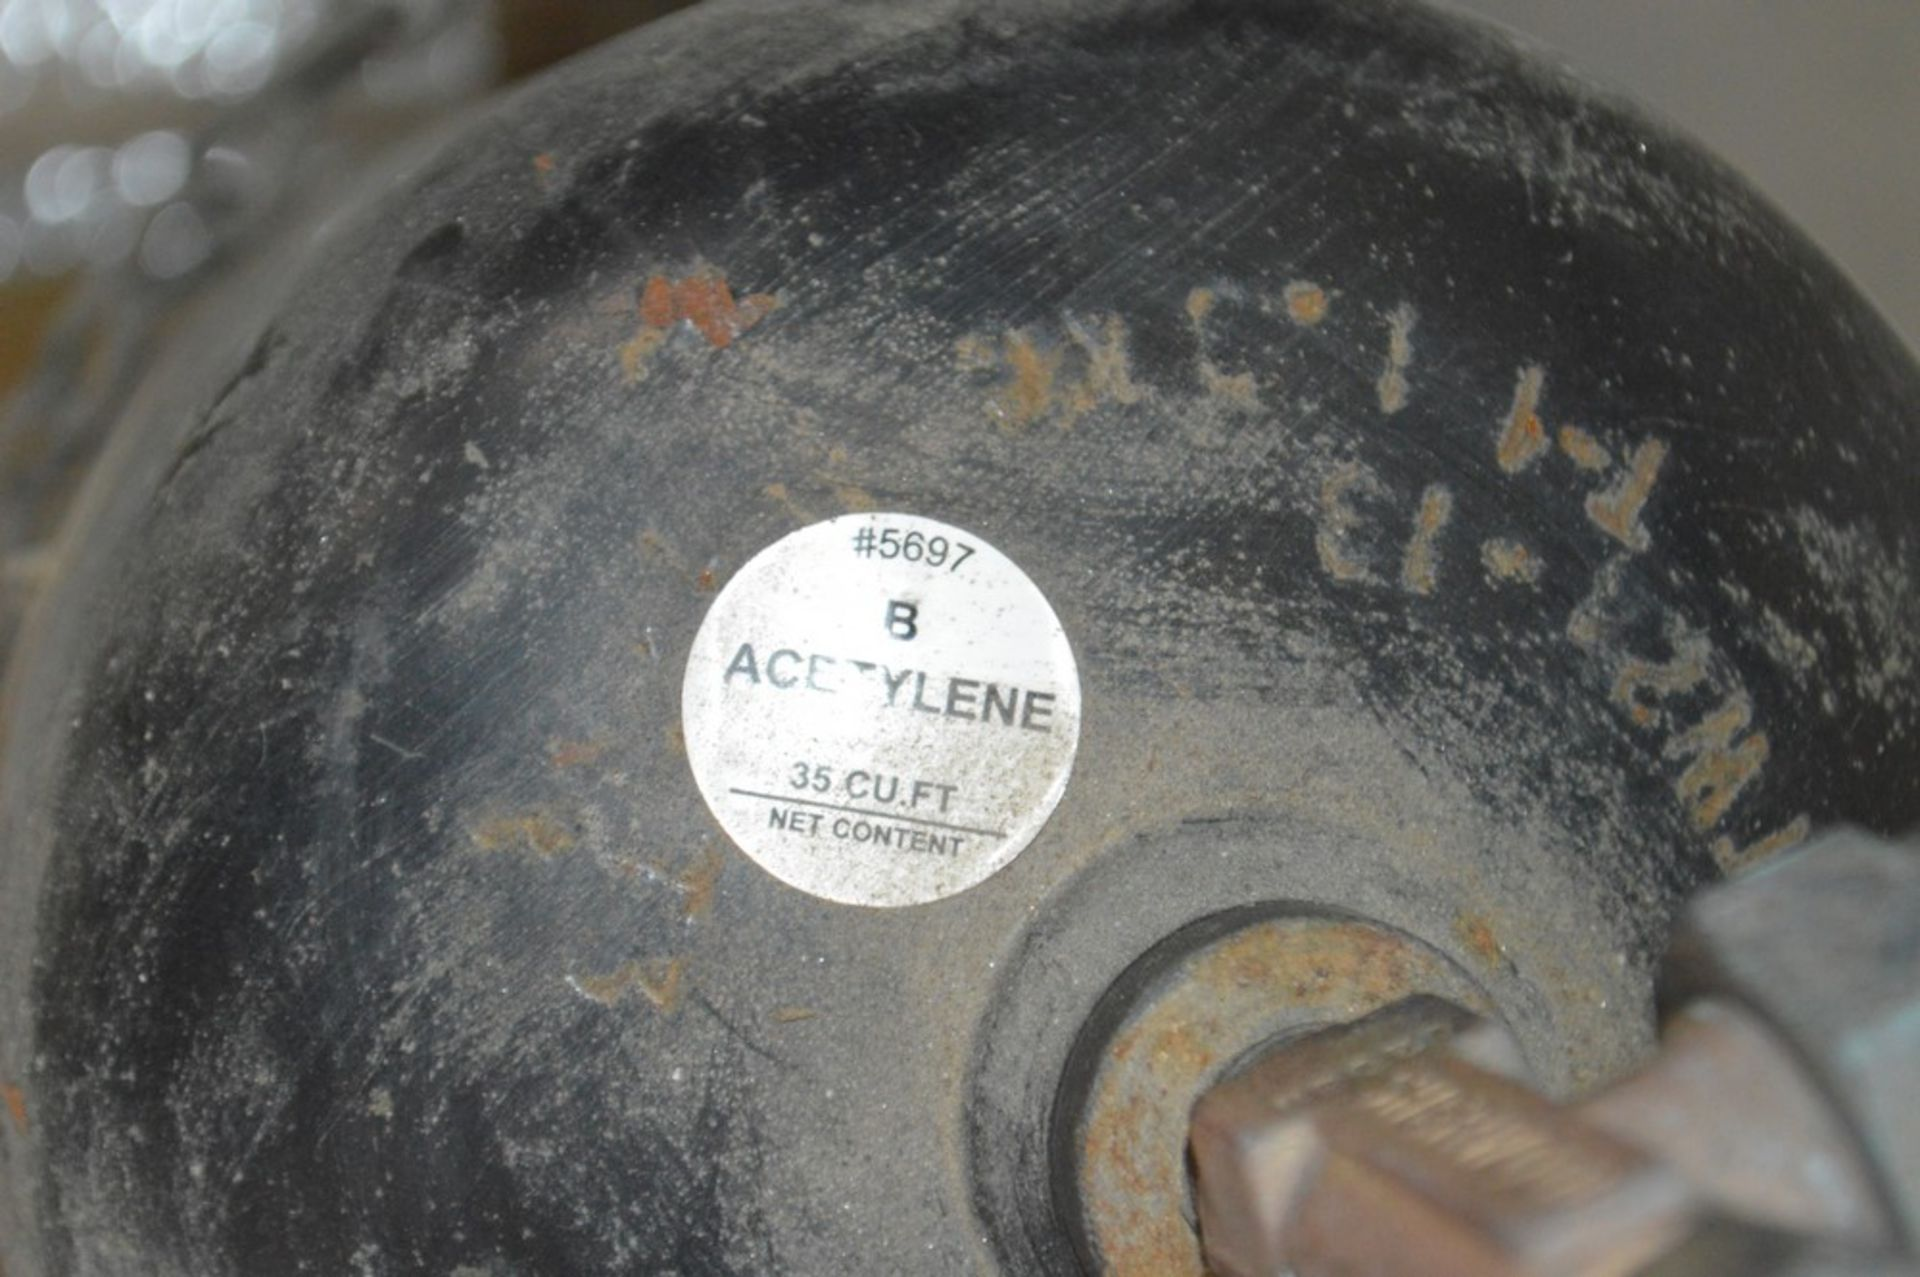 Acetylene torch on small rolling cart - Image 2 of 5